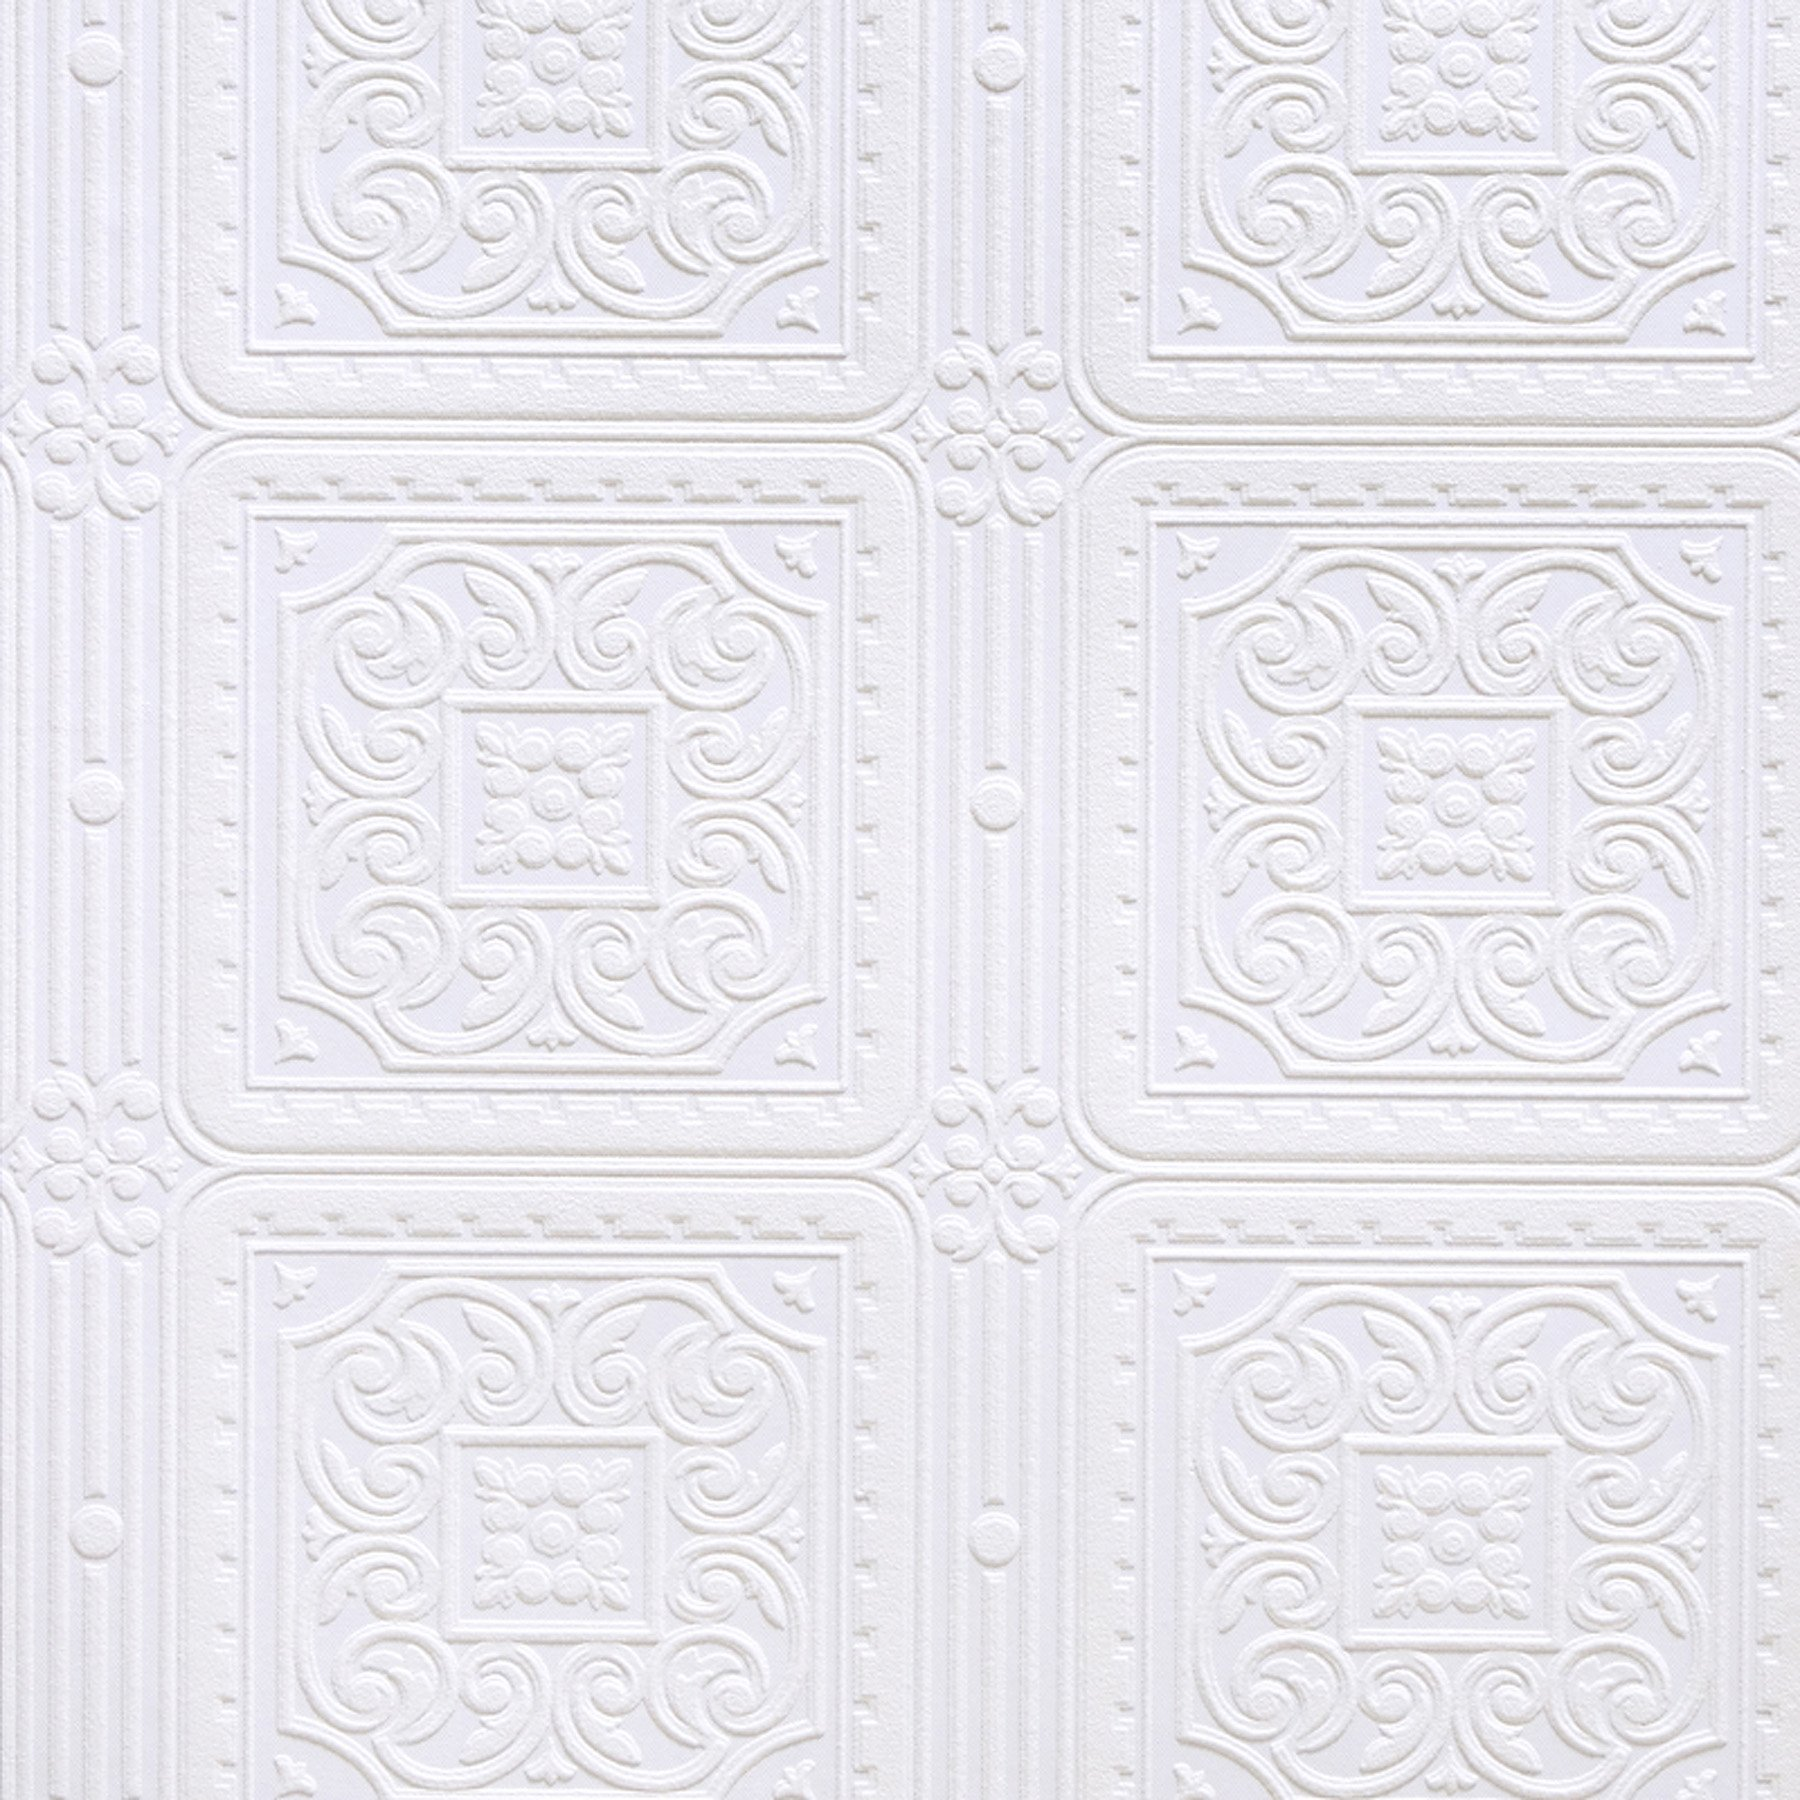 21-Inch by 396-Inch White Brewster RD336 Anaglypta Paintable Thick Weave Wallpaper